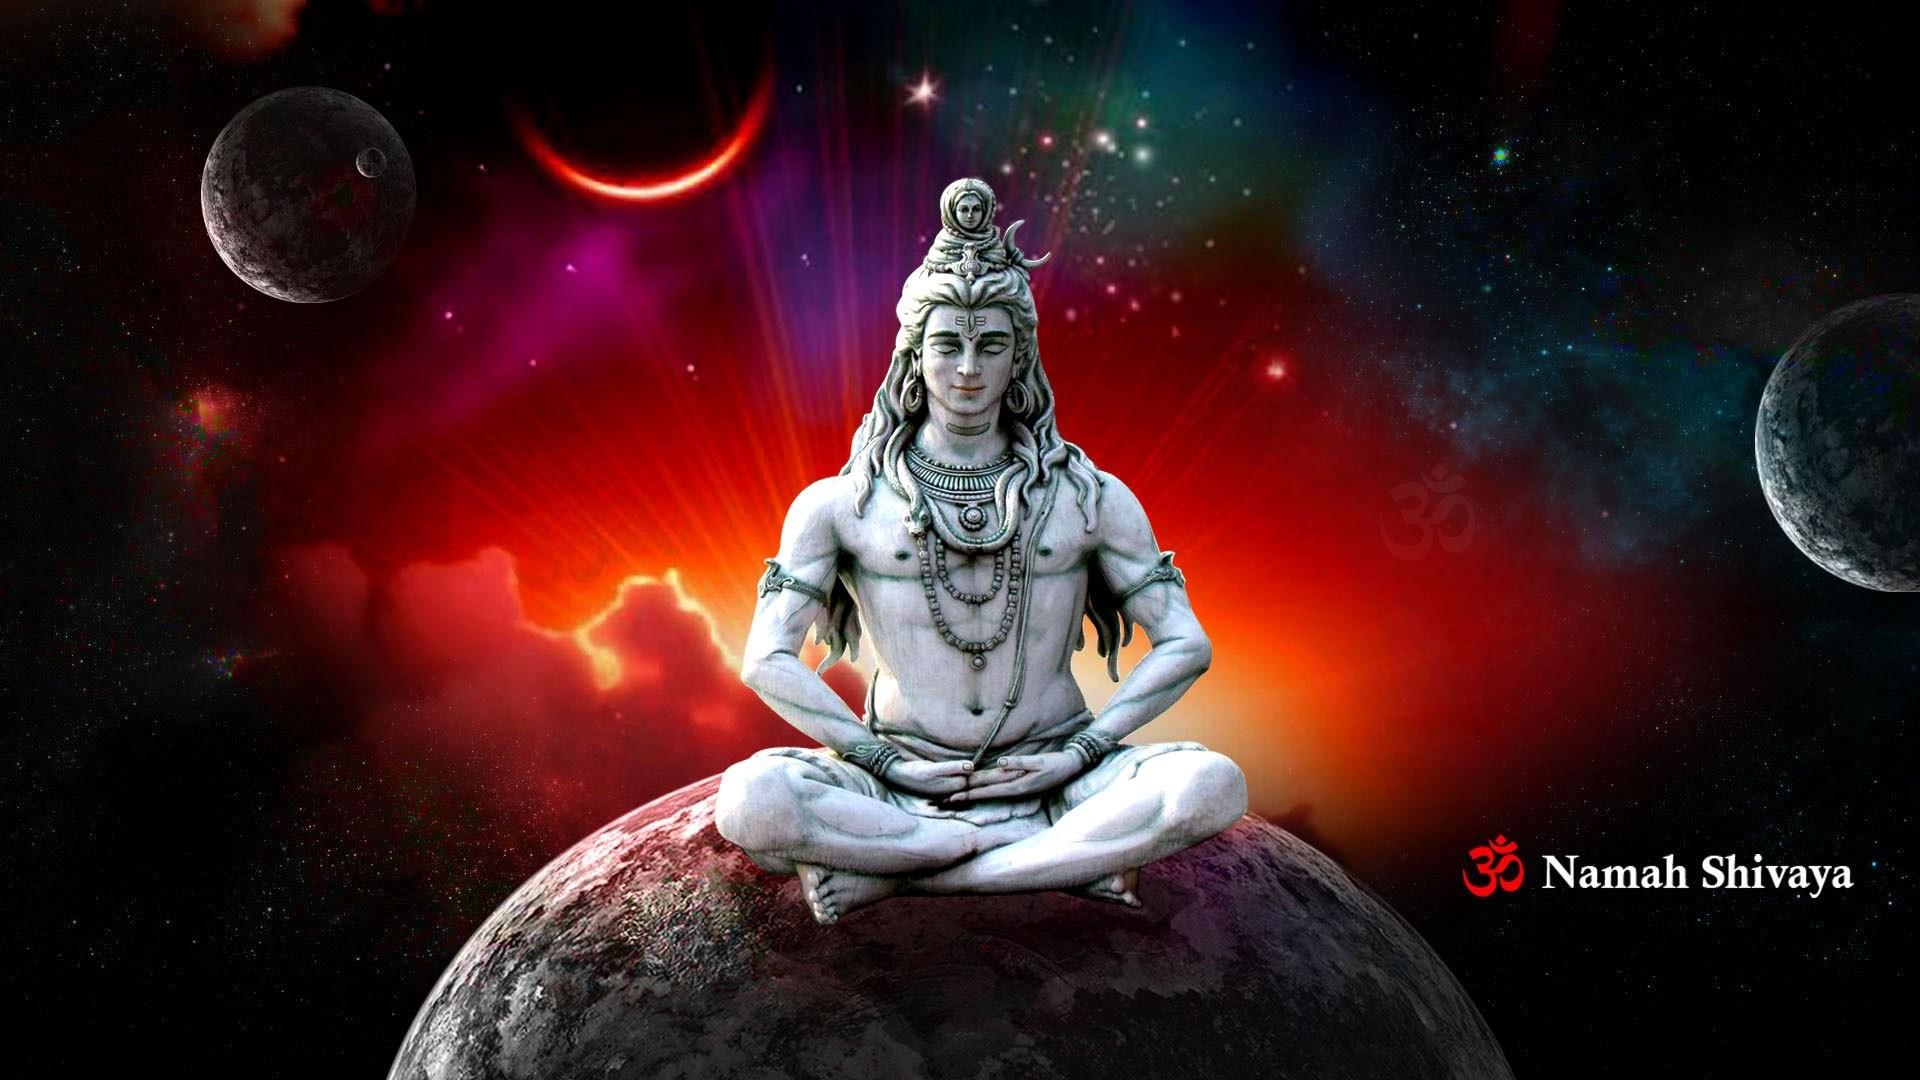 Lord Shiva In Rudra Avatar Animated Wallpapers   Data - Lord Shiva In Meditation - HD Wallpaper